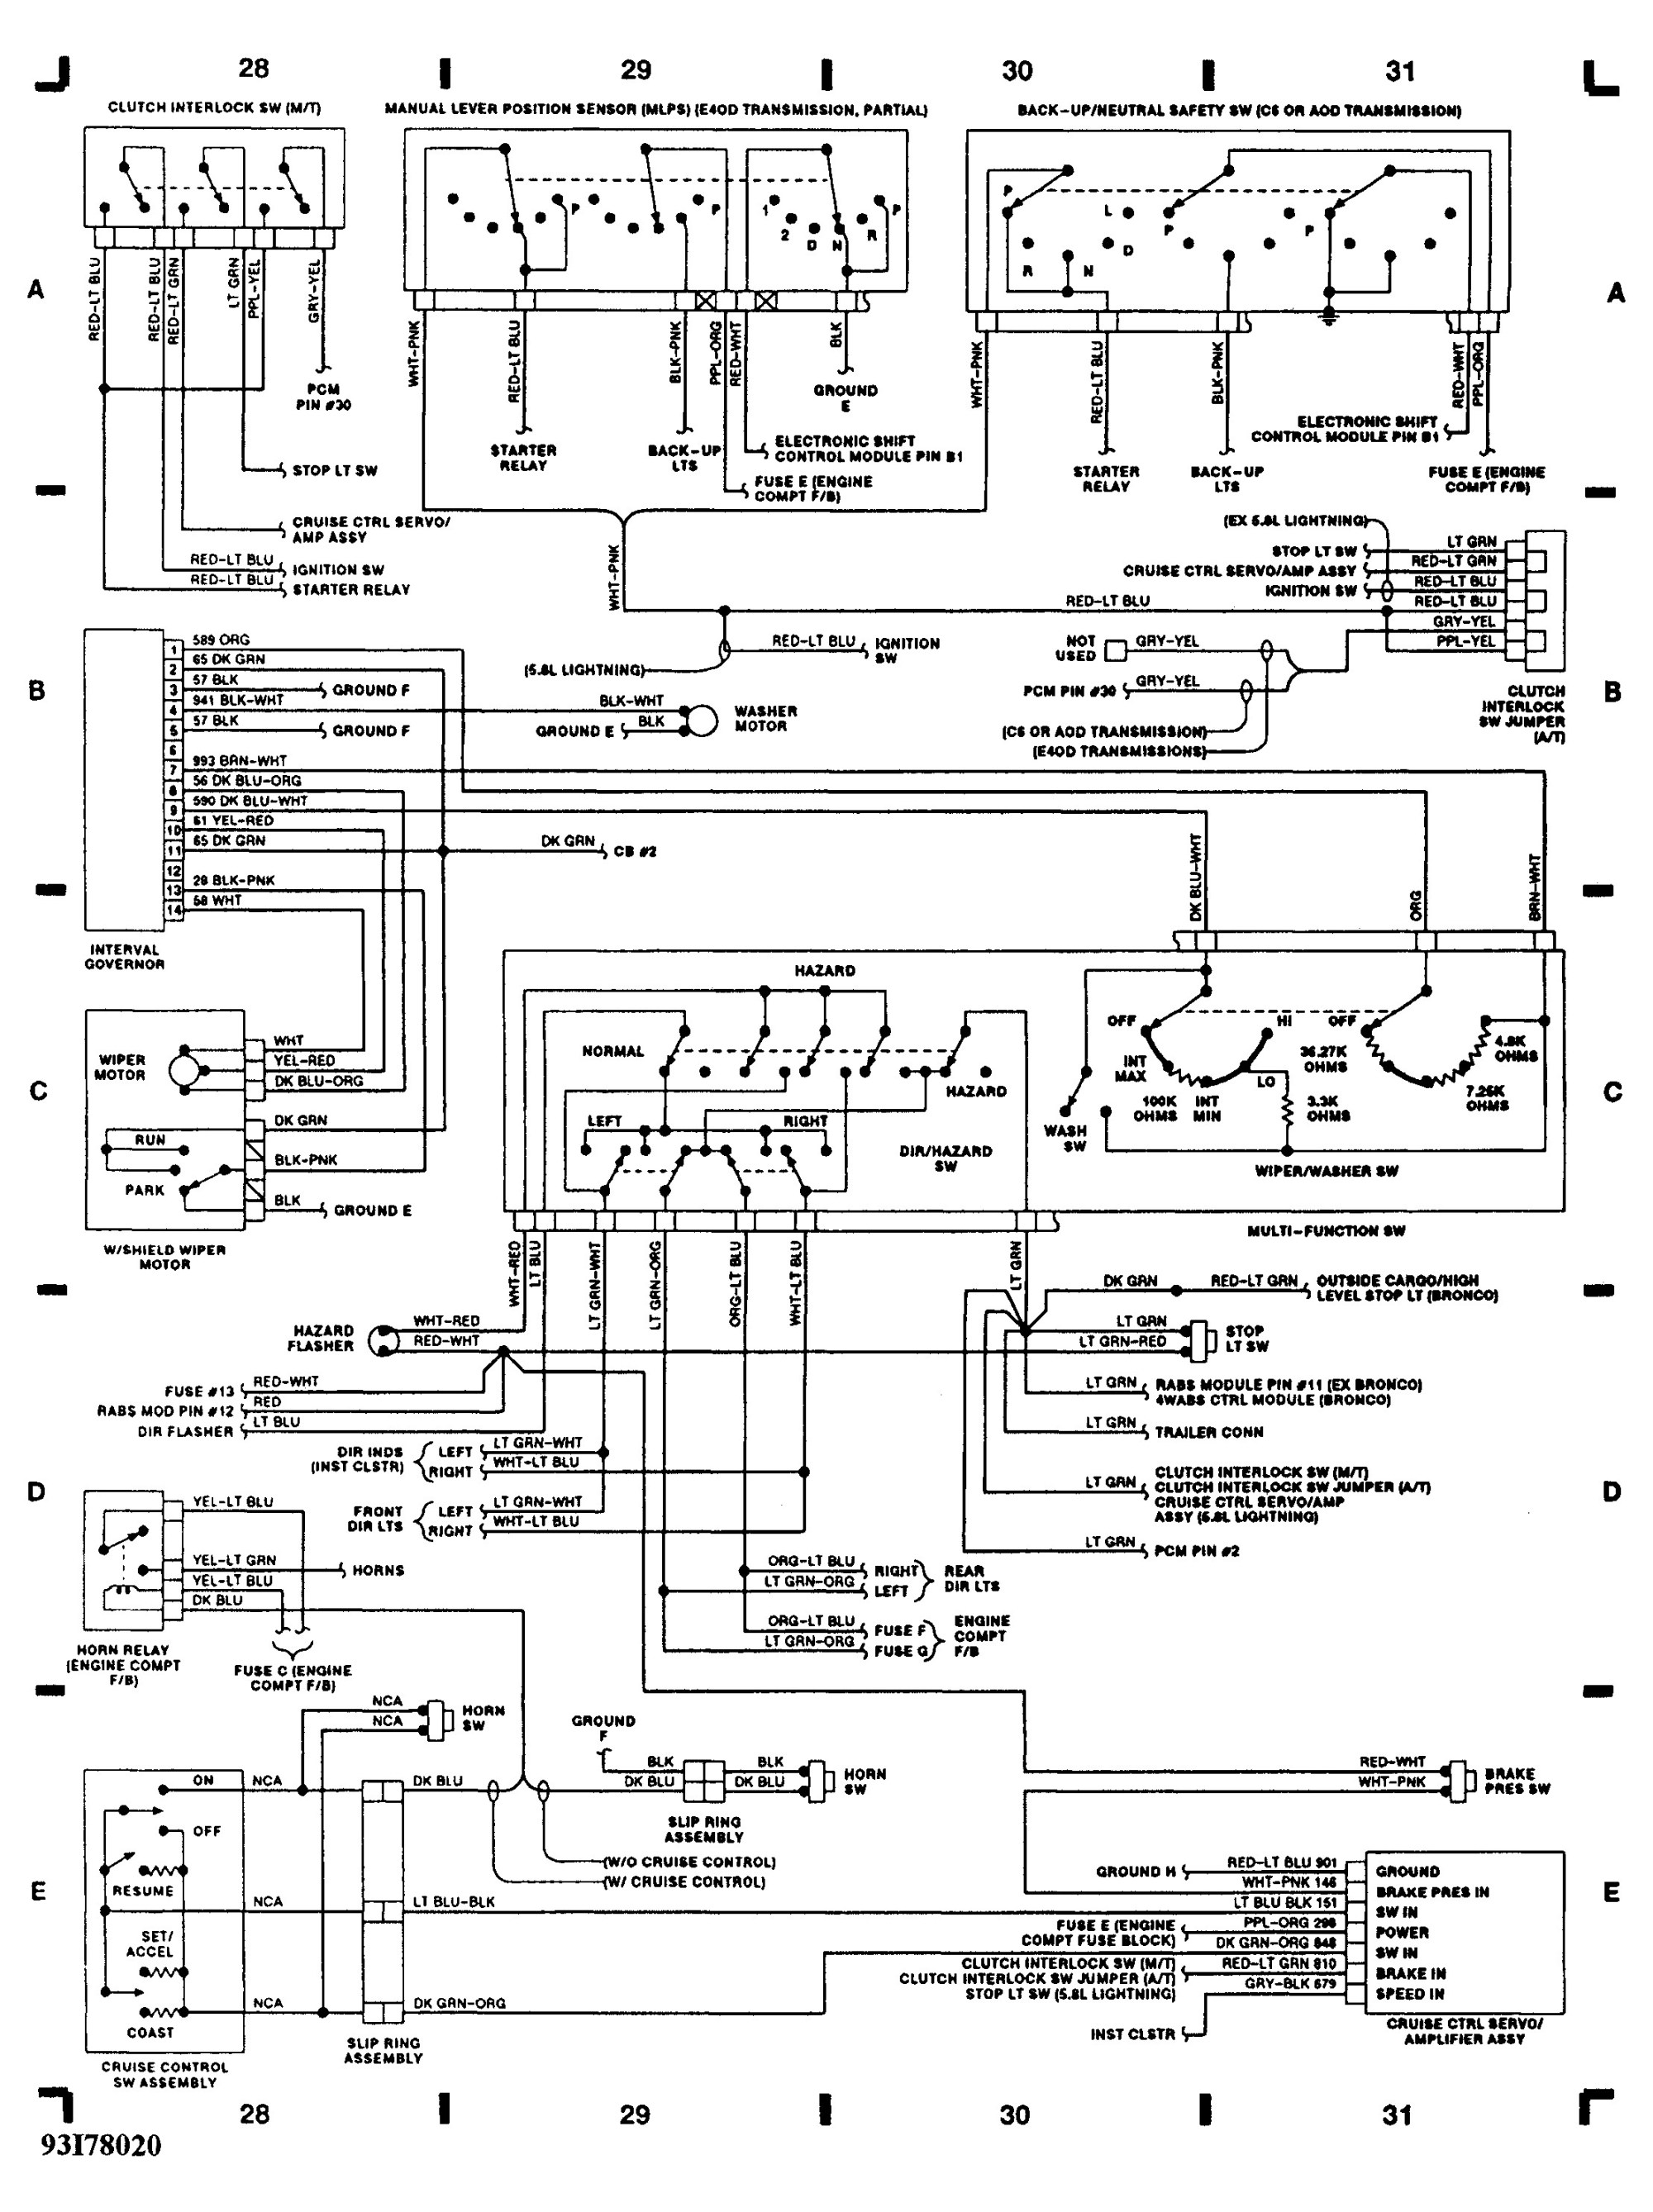 hight resolution of ficm wiring diagram wiring diagram dat 04 f250 ficm wiring diagram